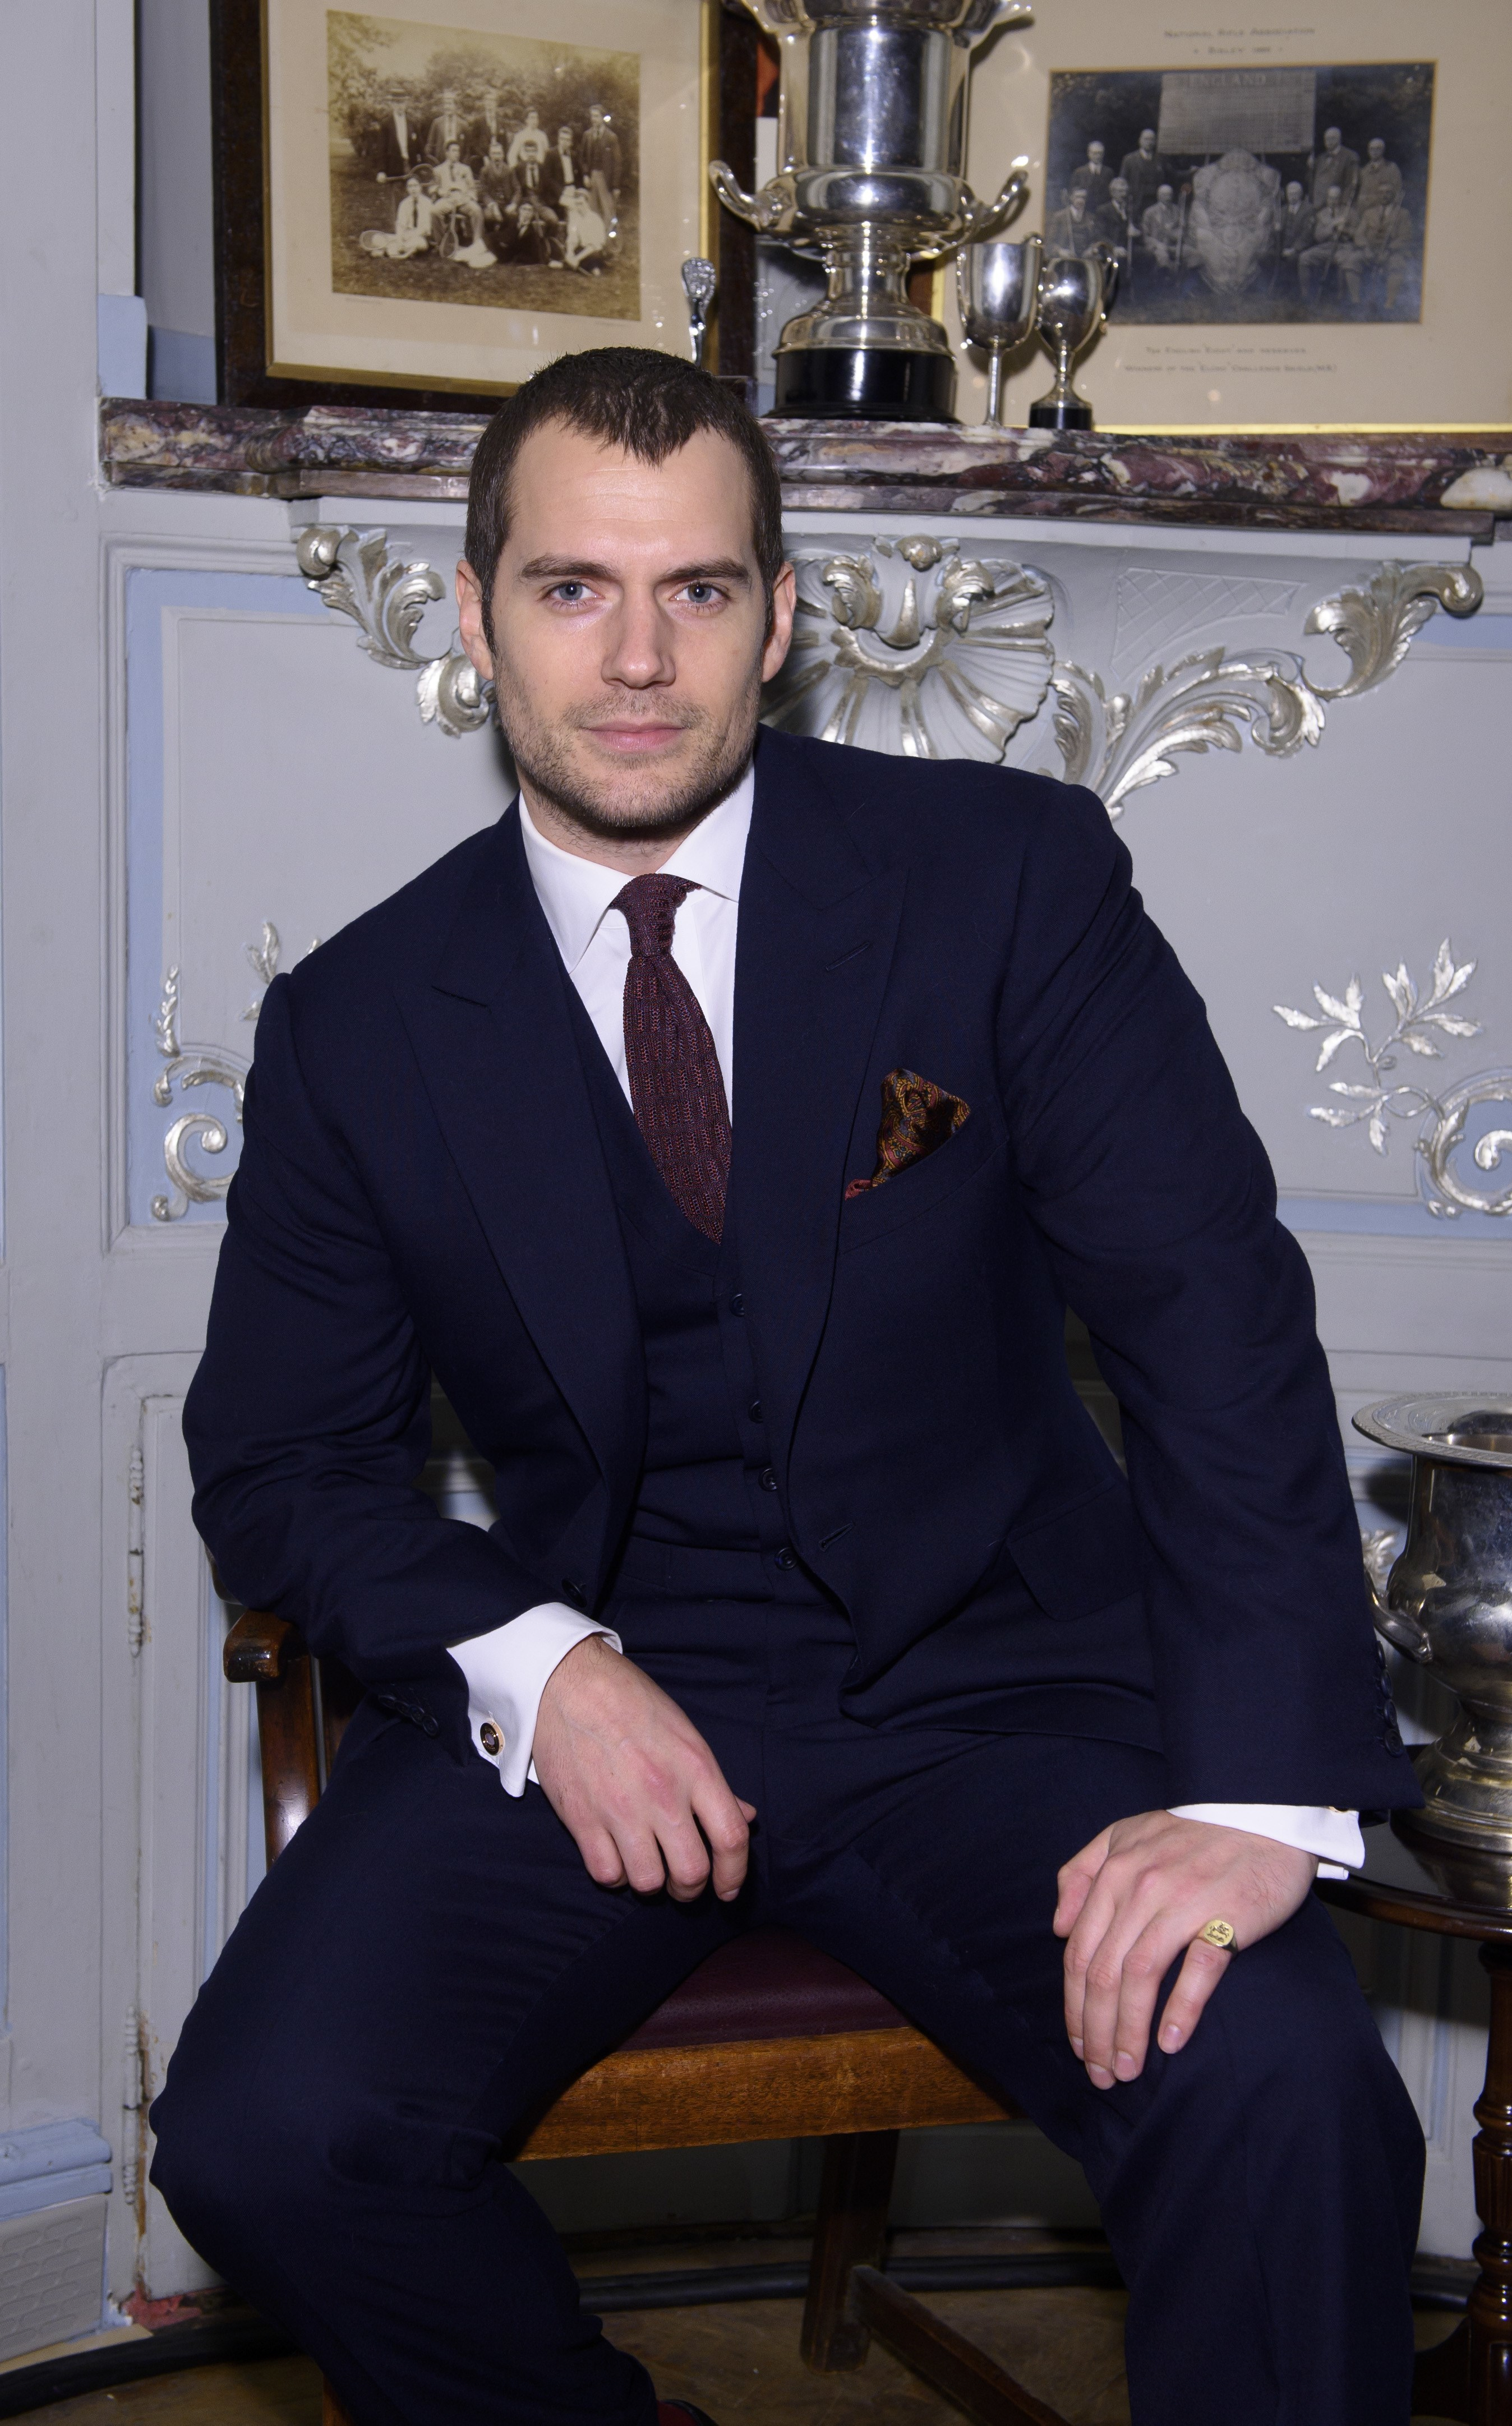 Henry Cavill took his 19 year old girlfriend home to meet his parents